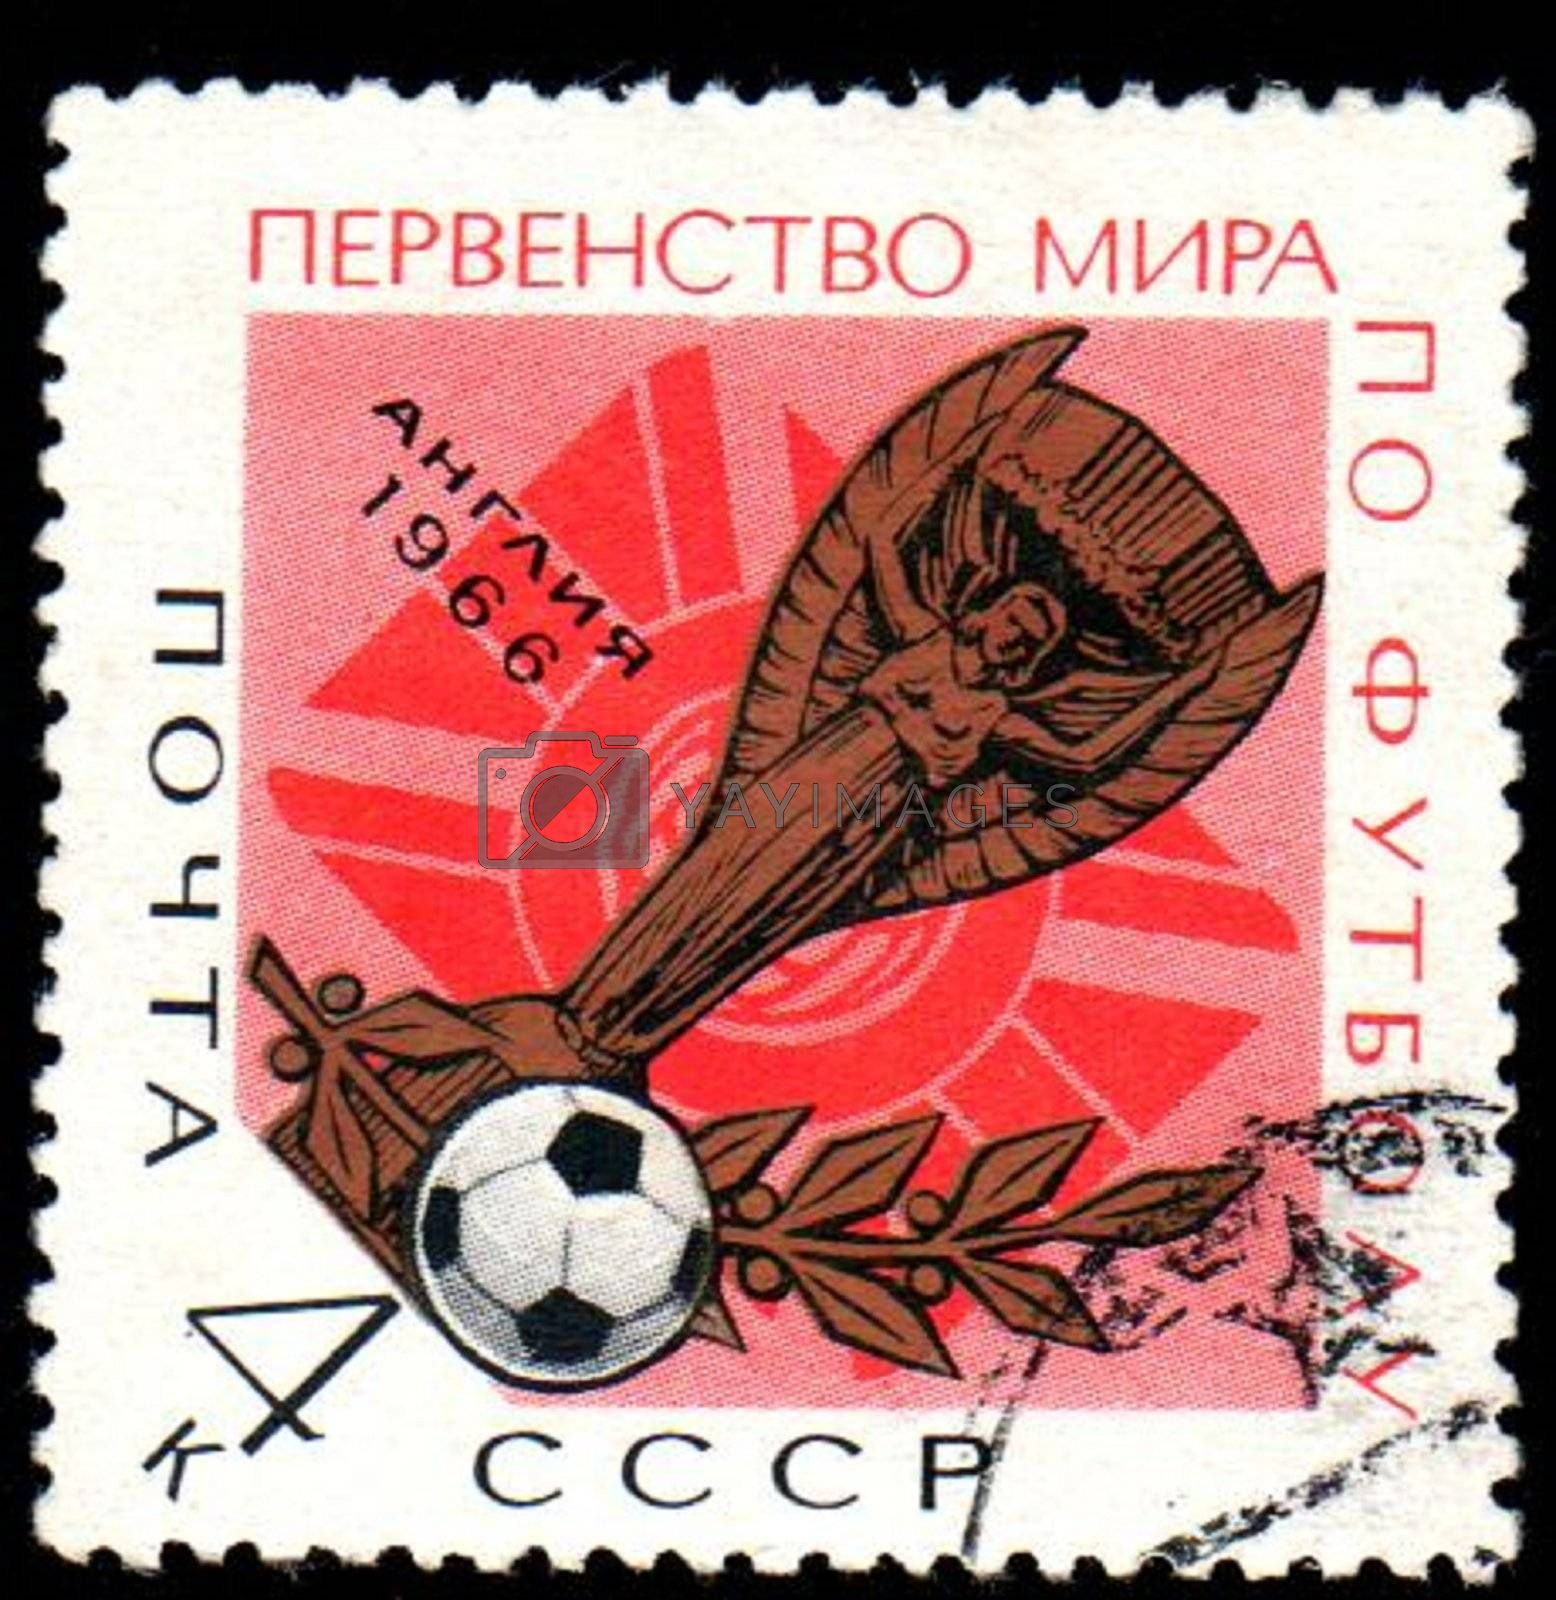 """1966 Soviet postage stamp year of release, depicts the Golden Cup """"the goddess of victory Nike"""" emblem on the Championship World Cup in England"""